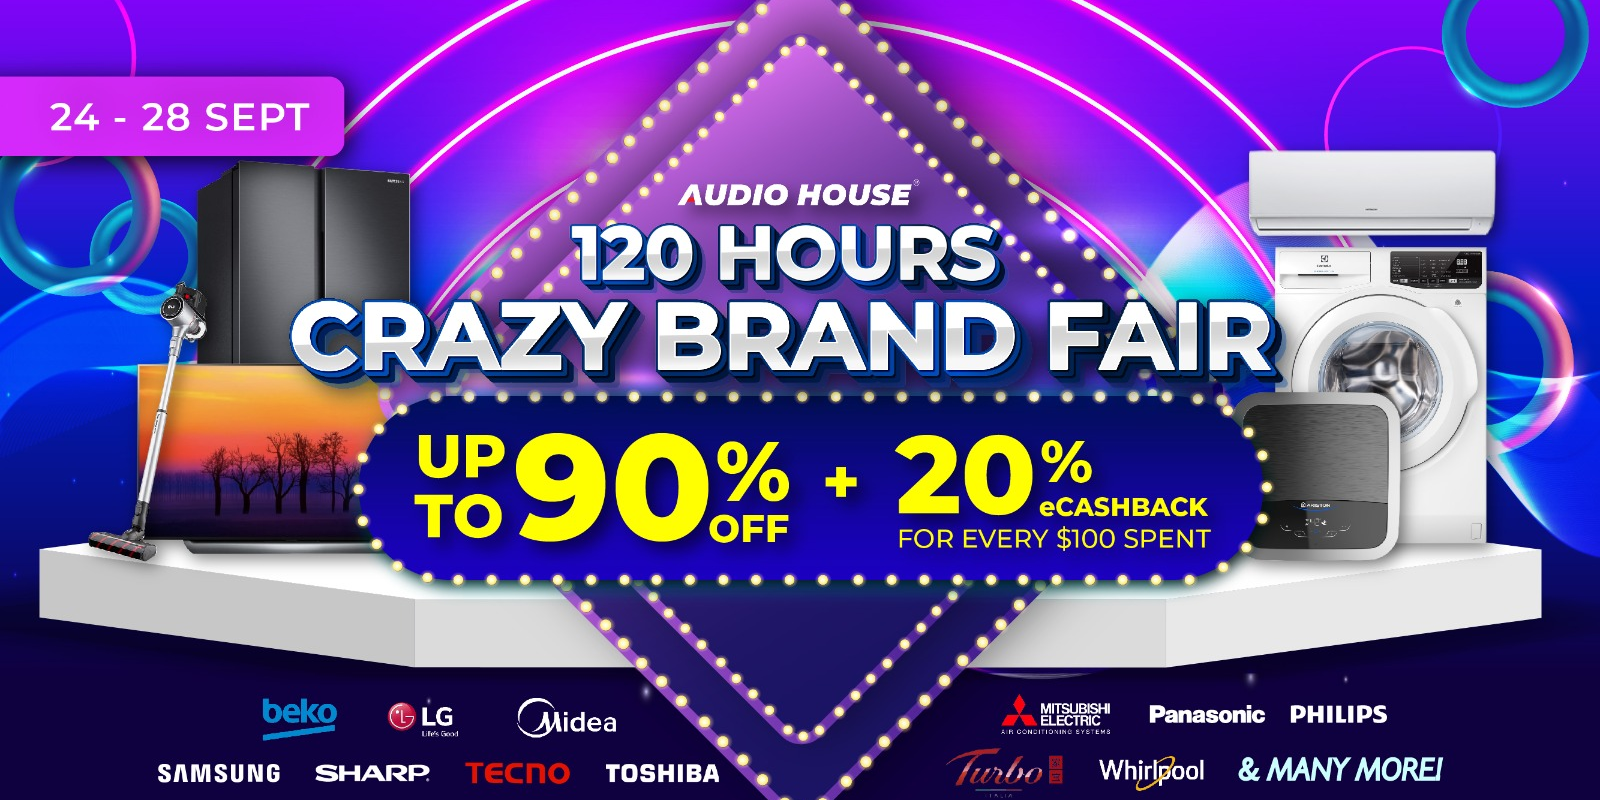 [Audio House 120 Hours Crazy Brand Fair] Up to 90% OFF + 20% eCashback For Every $100 Spent!